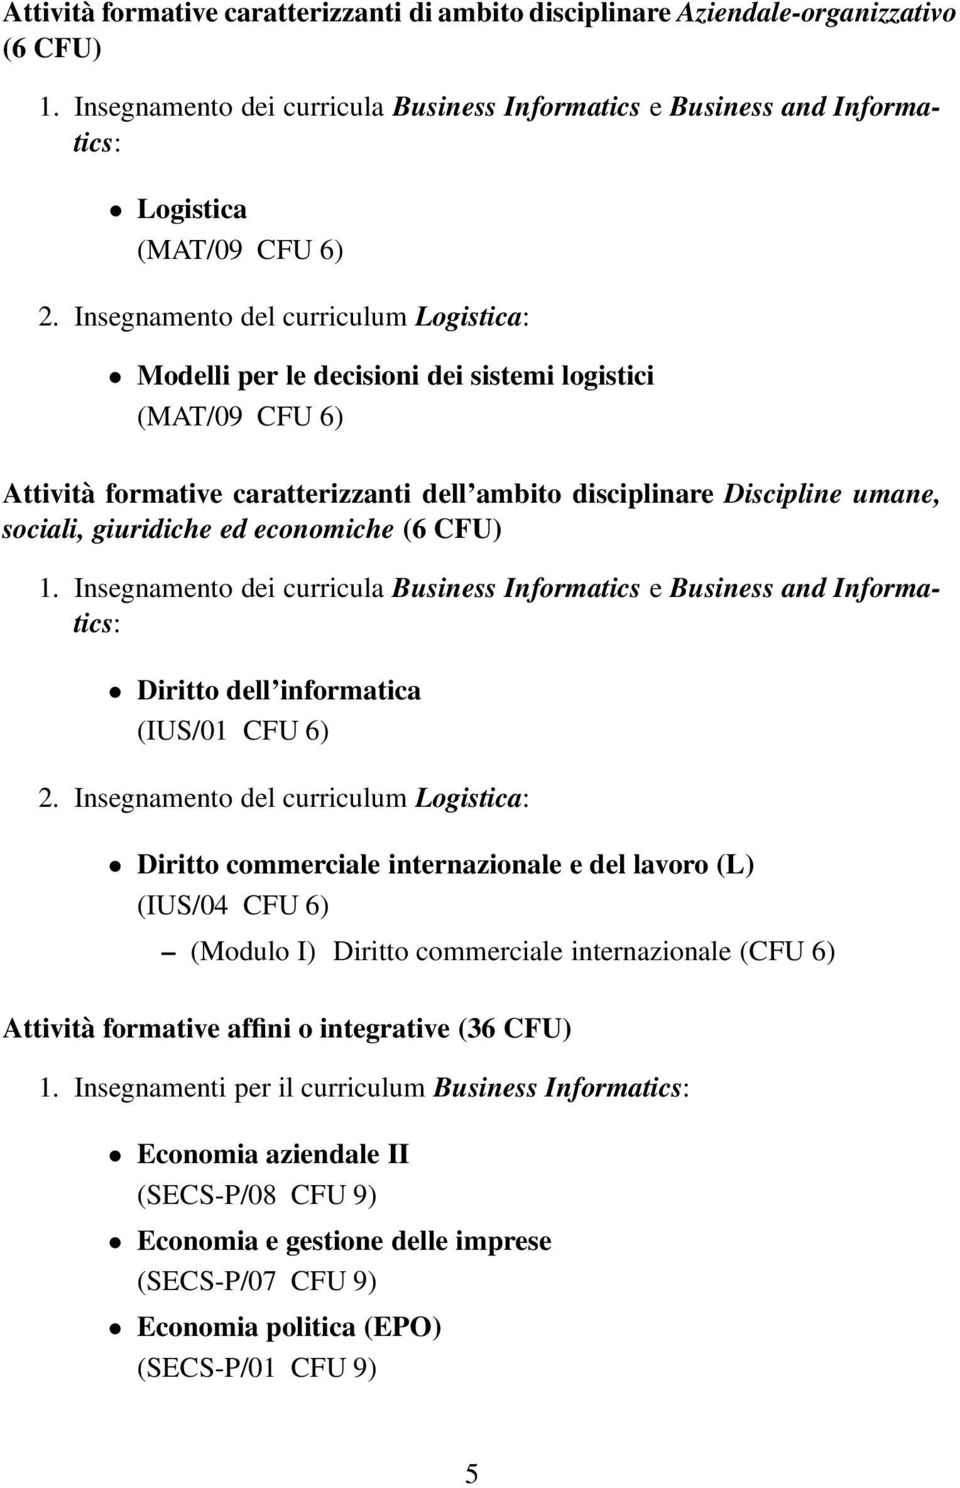 ed economiche (6 CFU) 1. Insegnamento dei curricula Business Informatics e Business and Informatics: Diritto dell informatica (IUS/01 CFU 6) 2.